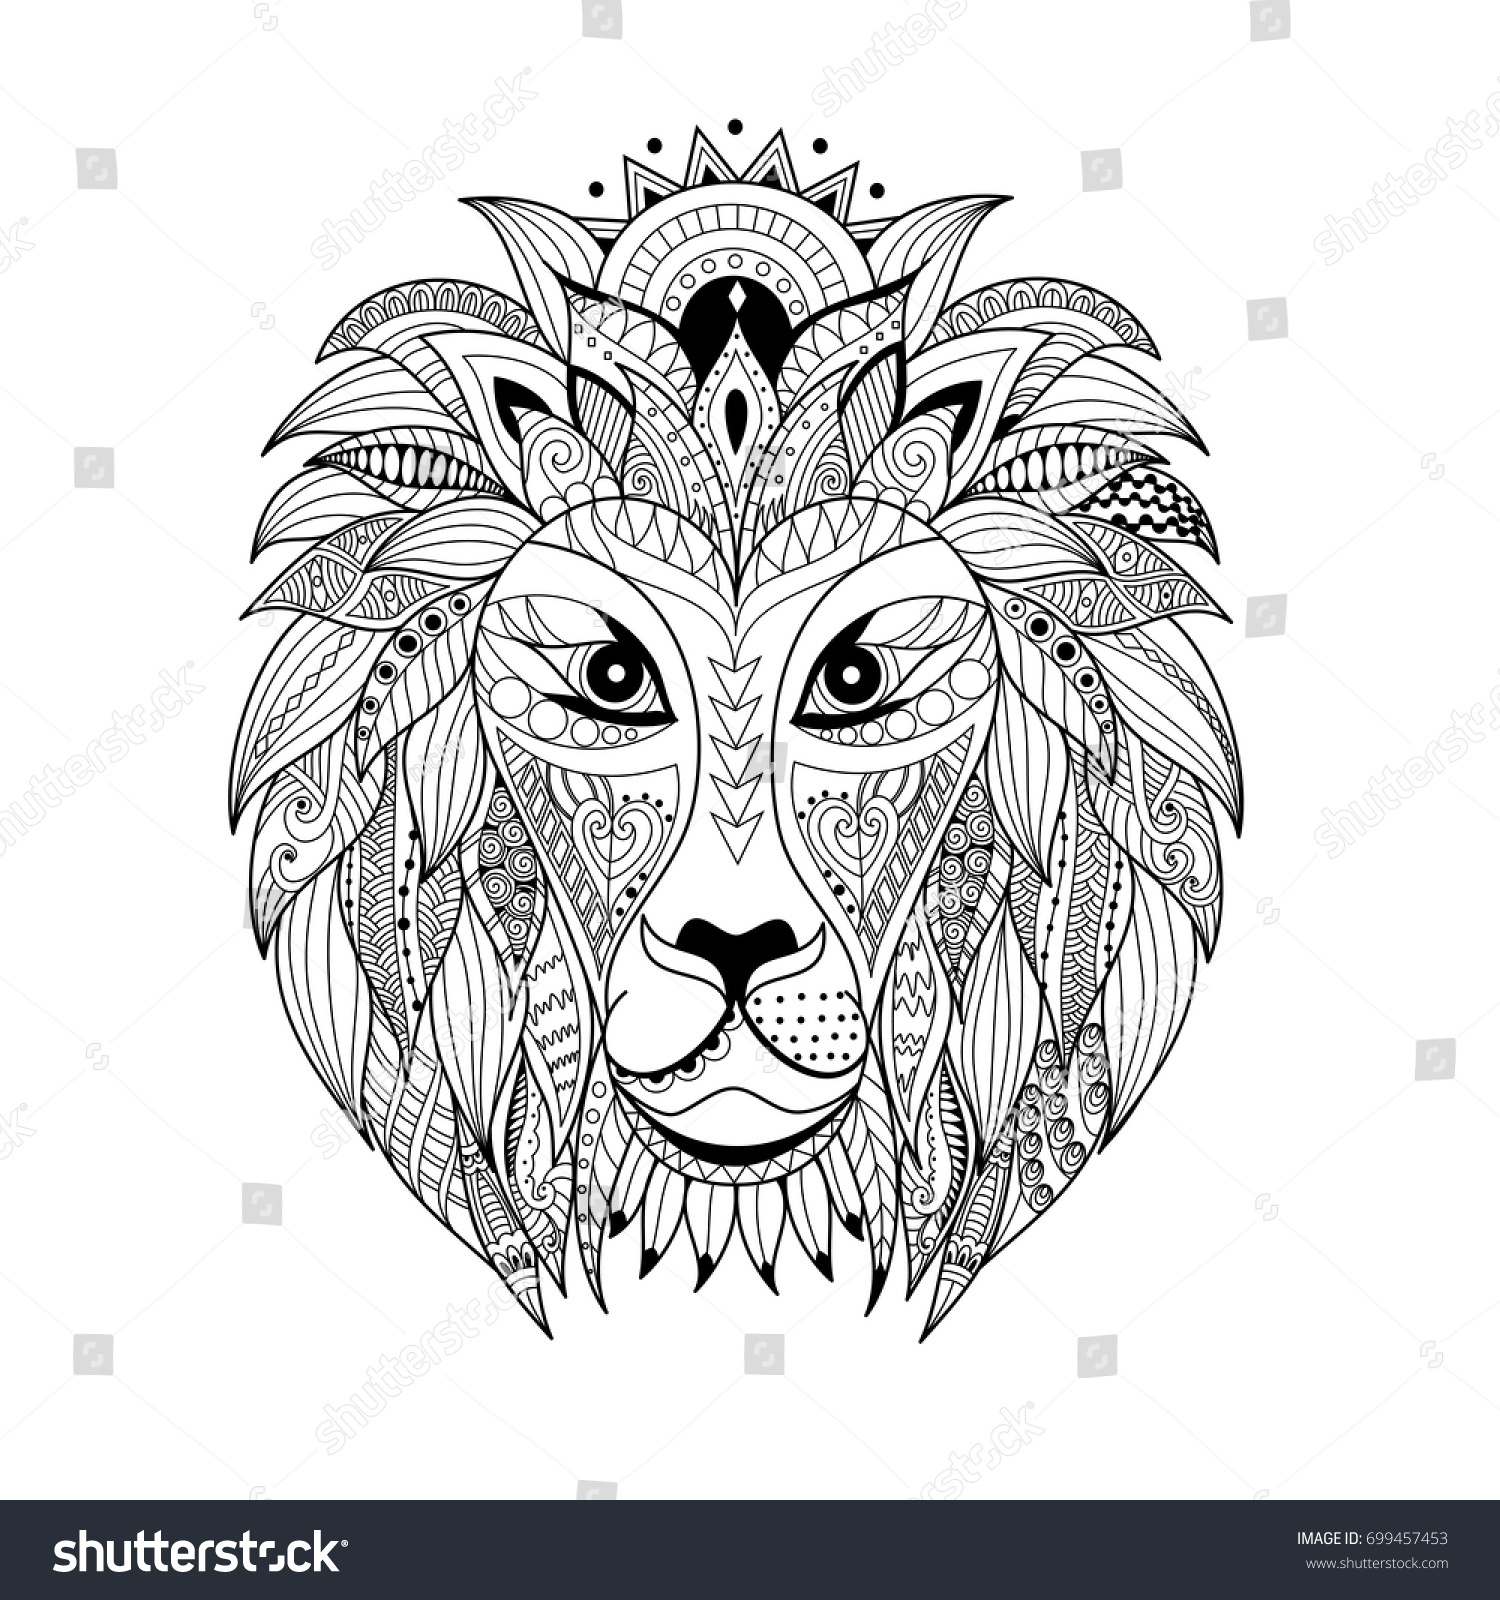 Lion Coloring Pages Adult Lion Head Coloring Pages Printable ... | 1600x1500